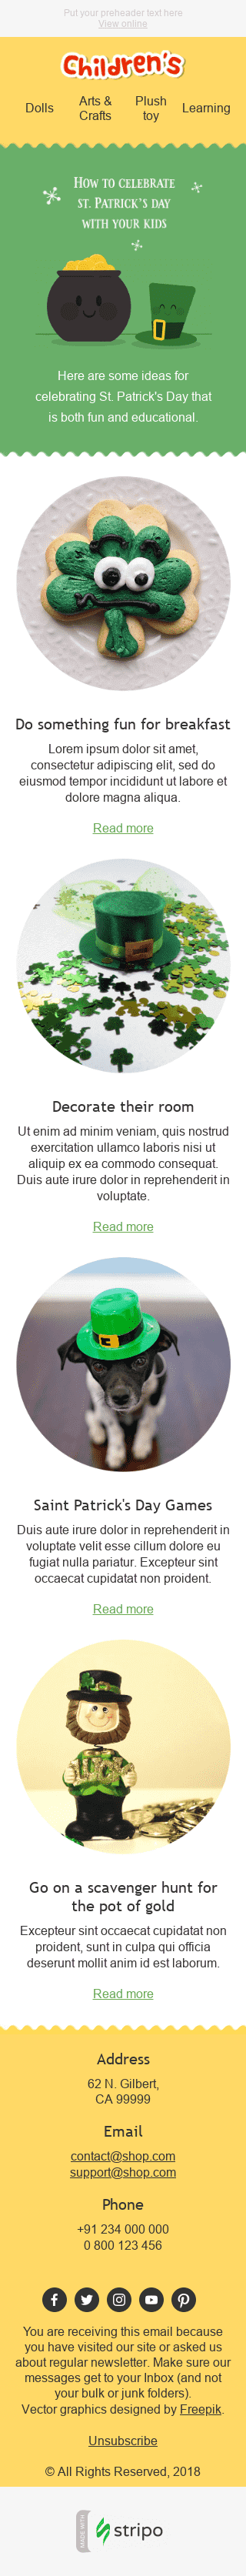 Stripo Children Holiday newsletter Happy St Patrick's Day Fun Ideas email web